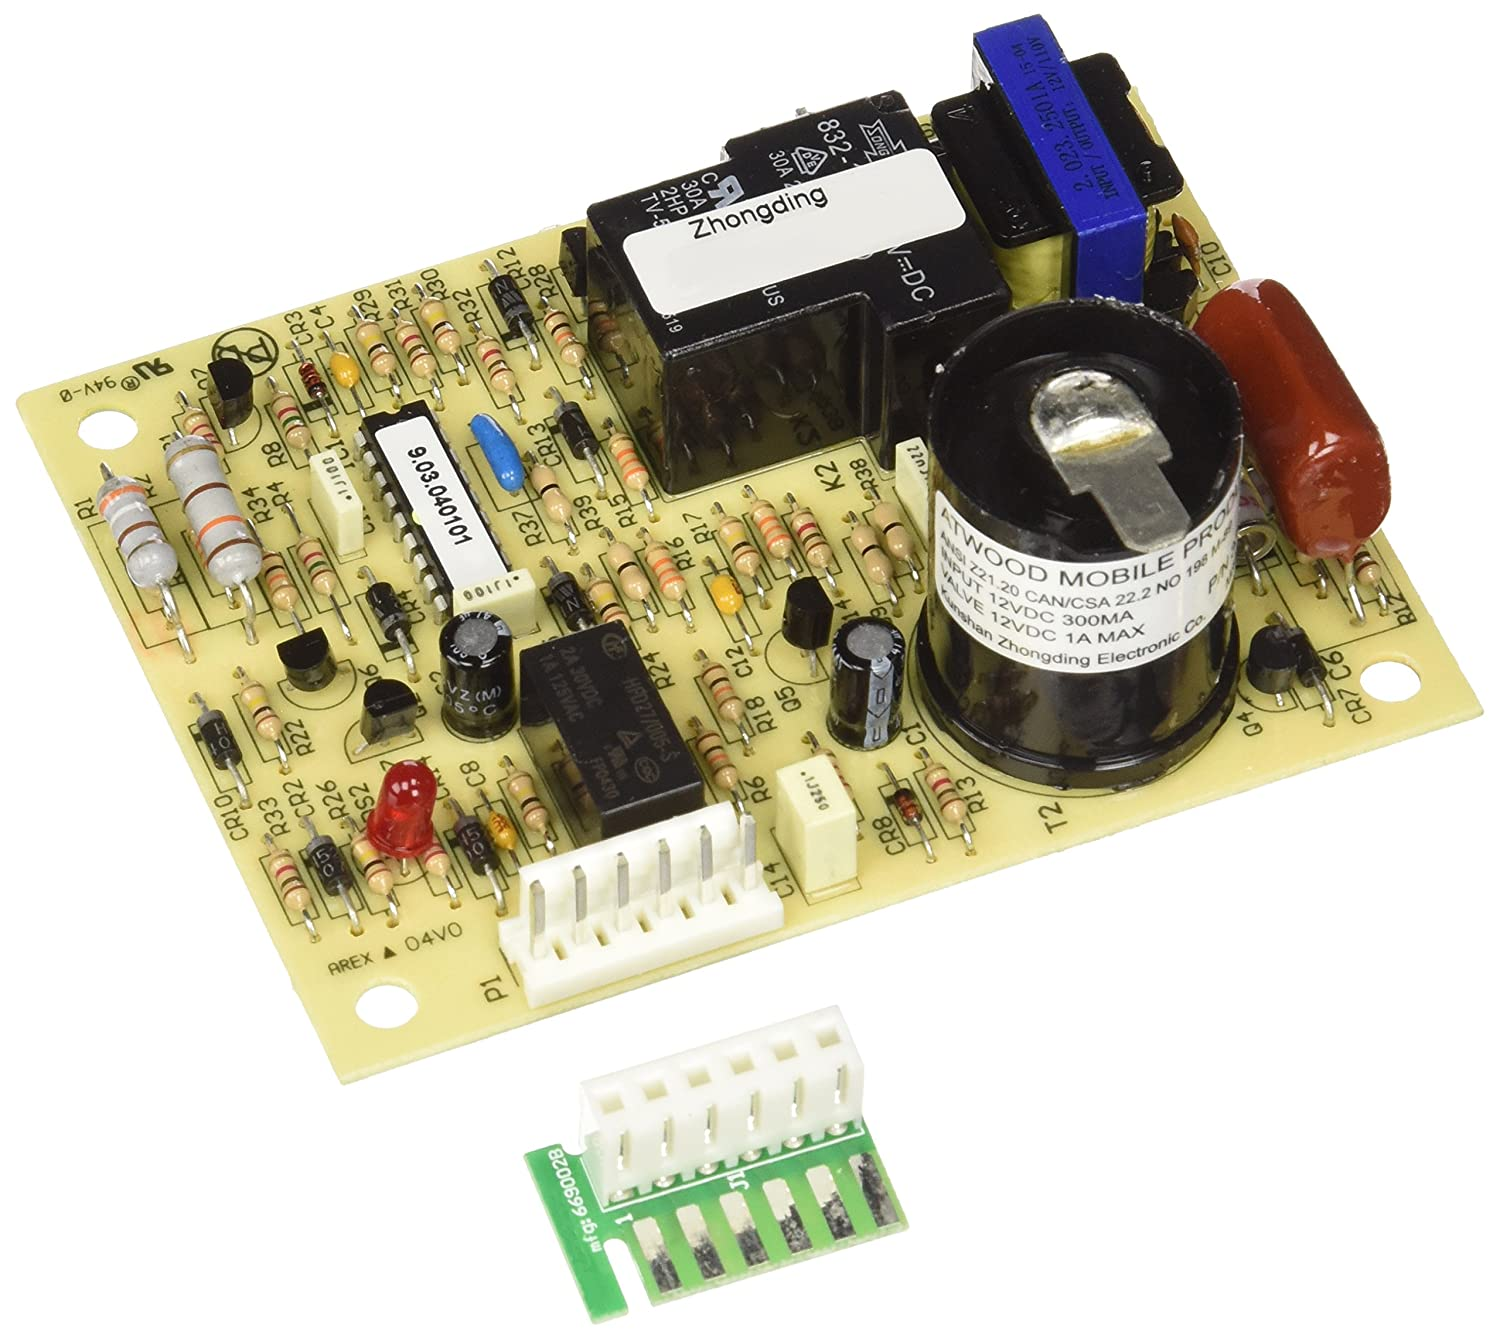 91SJ70YT1AL._SL1500_ dinosaur electronics uib s small universal ignitor board amazon  at pacquiaovsvargaslive.co